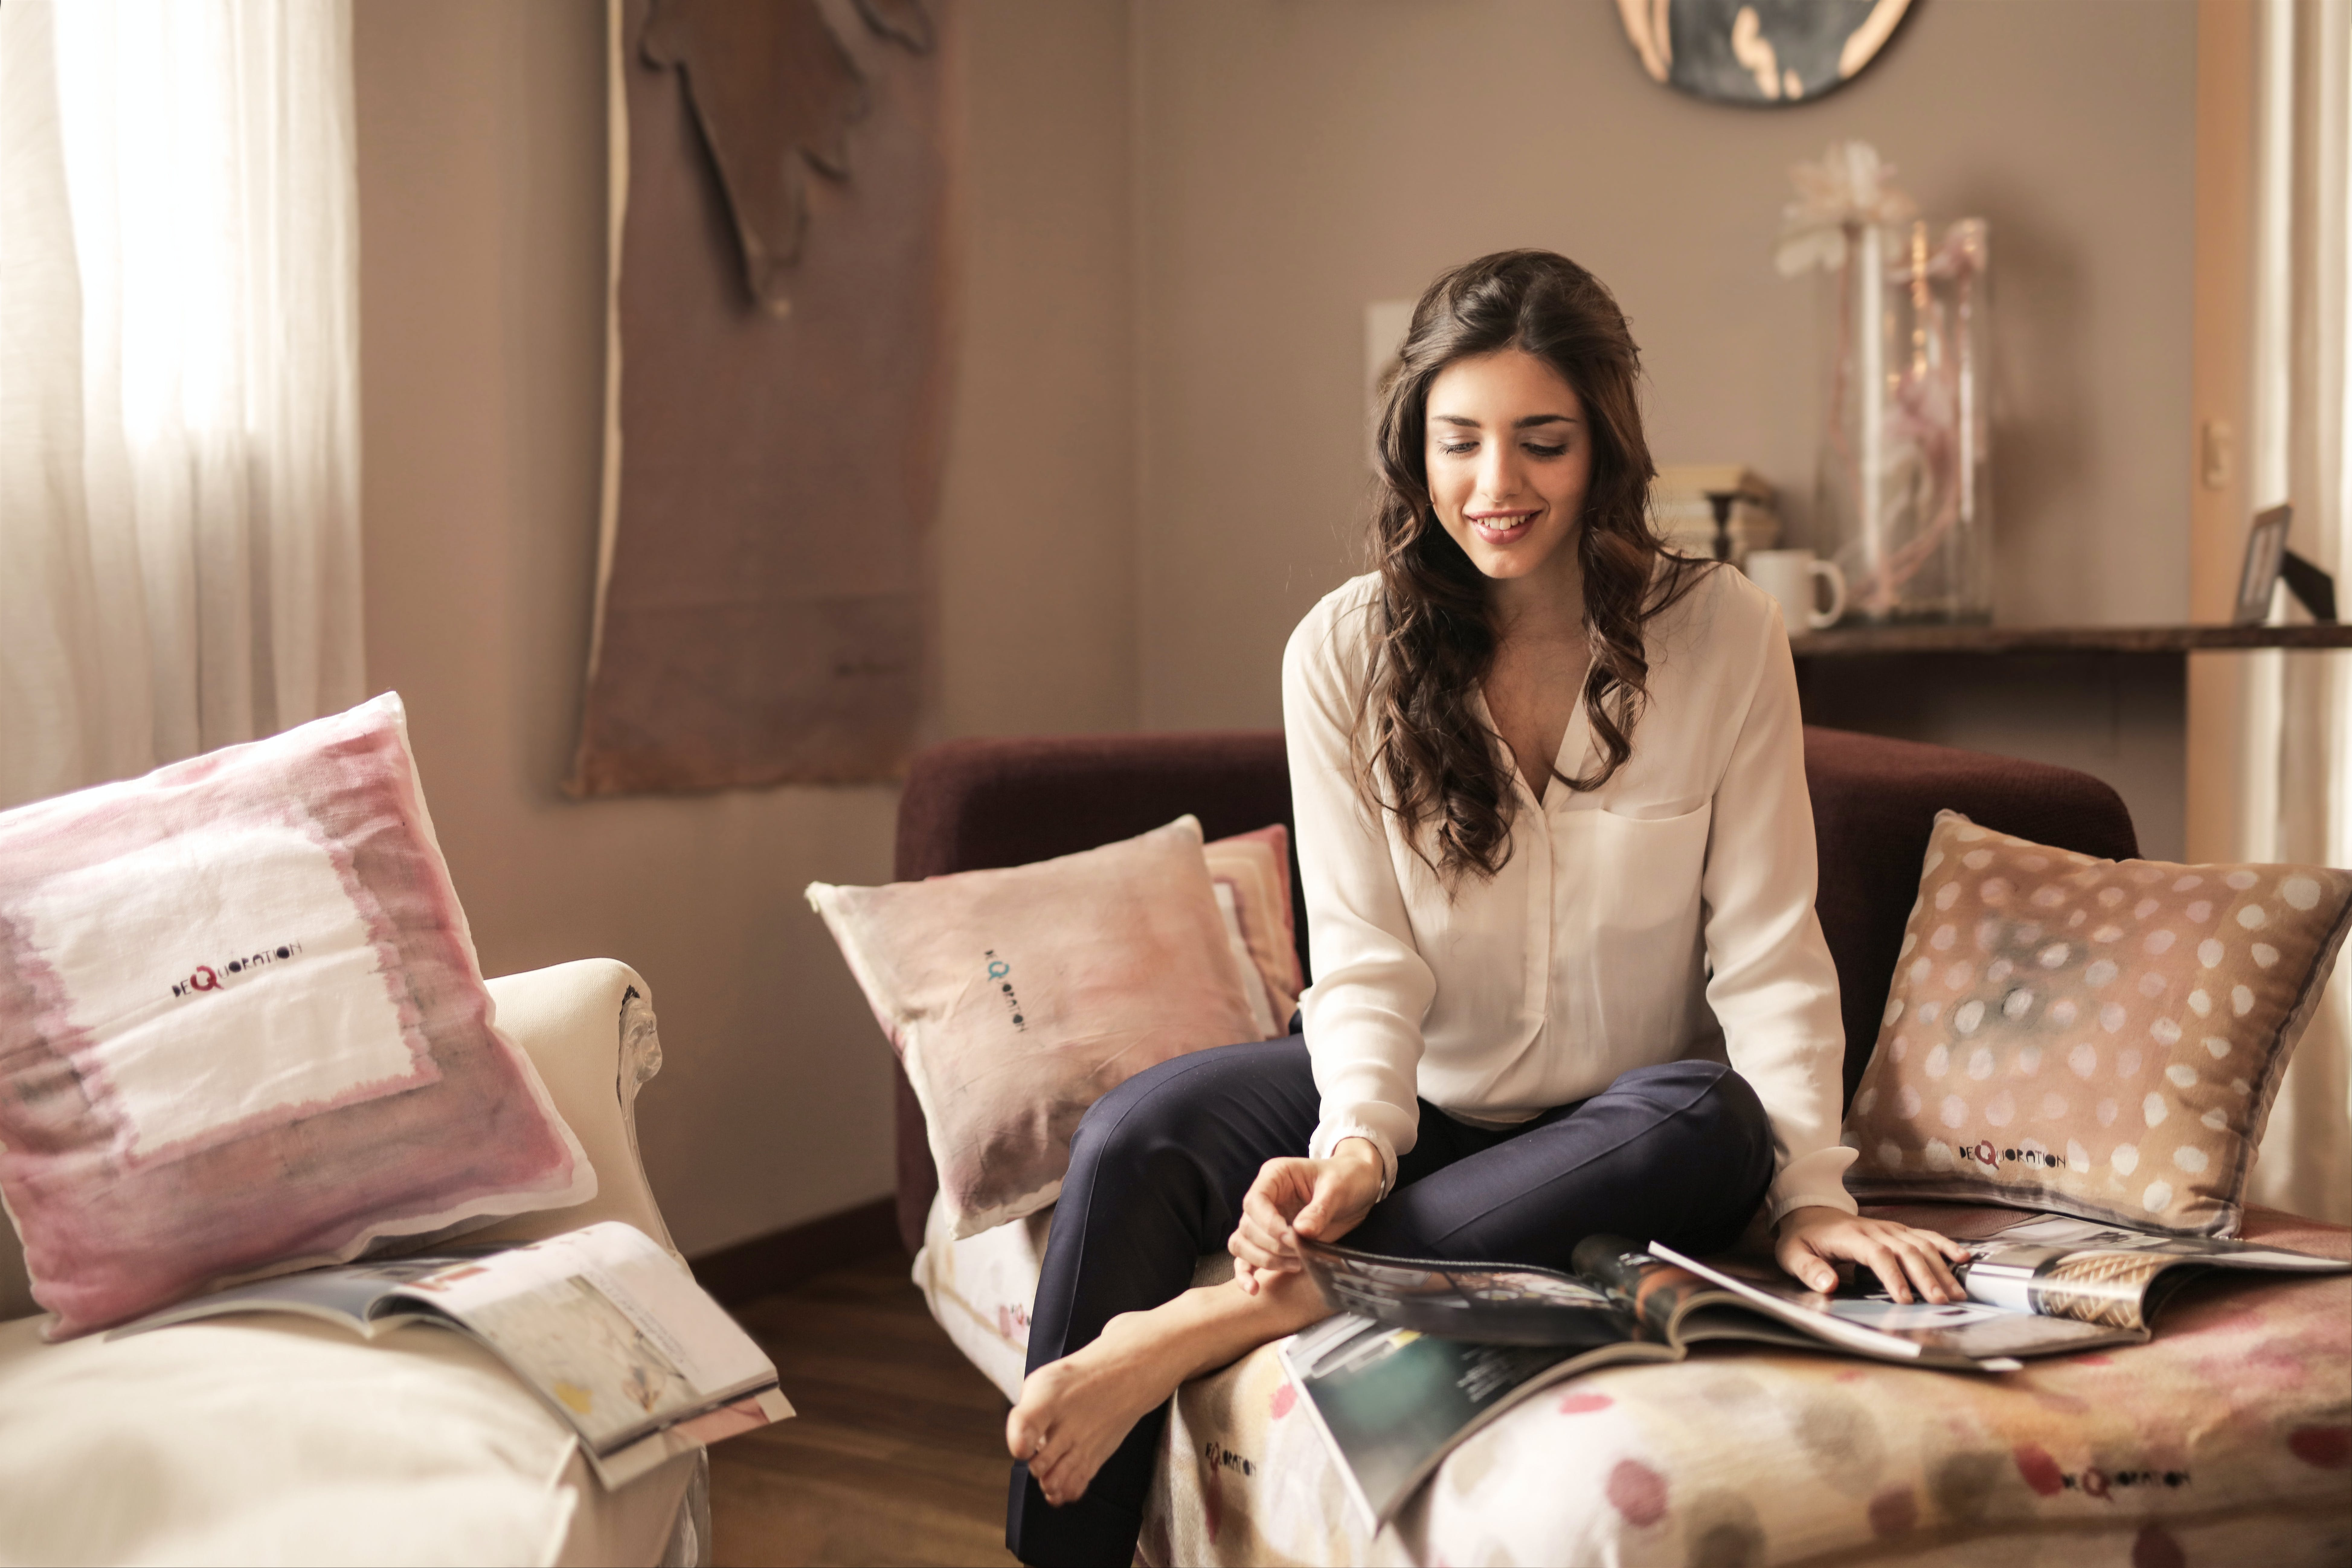 Women in White Button-up Long-sleeved Top and Black Pants Sitting on White and Brown Bed